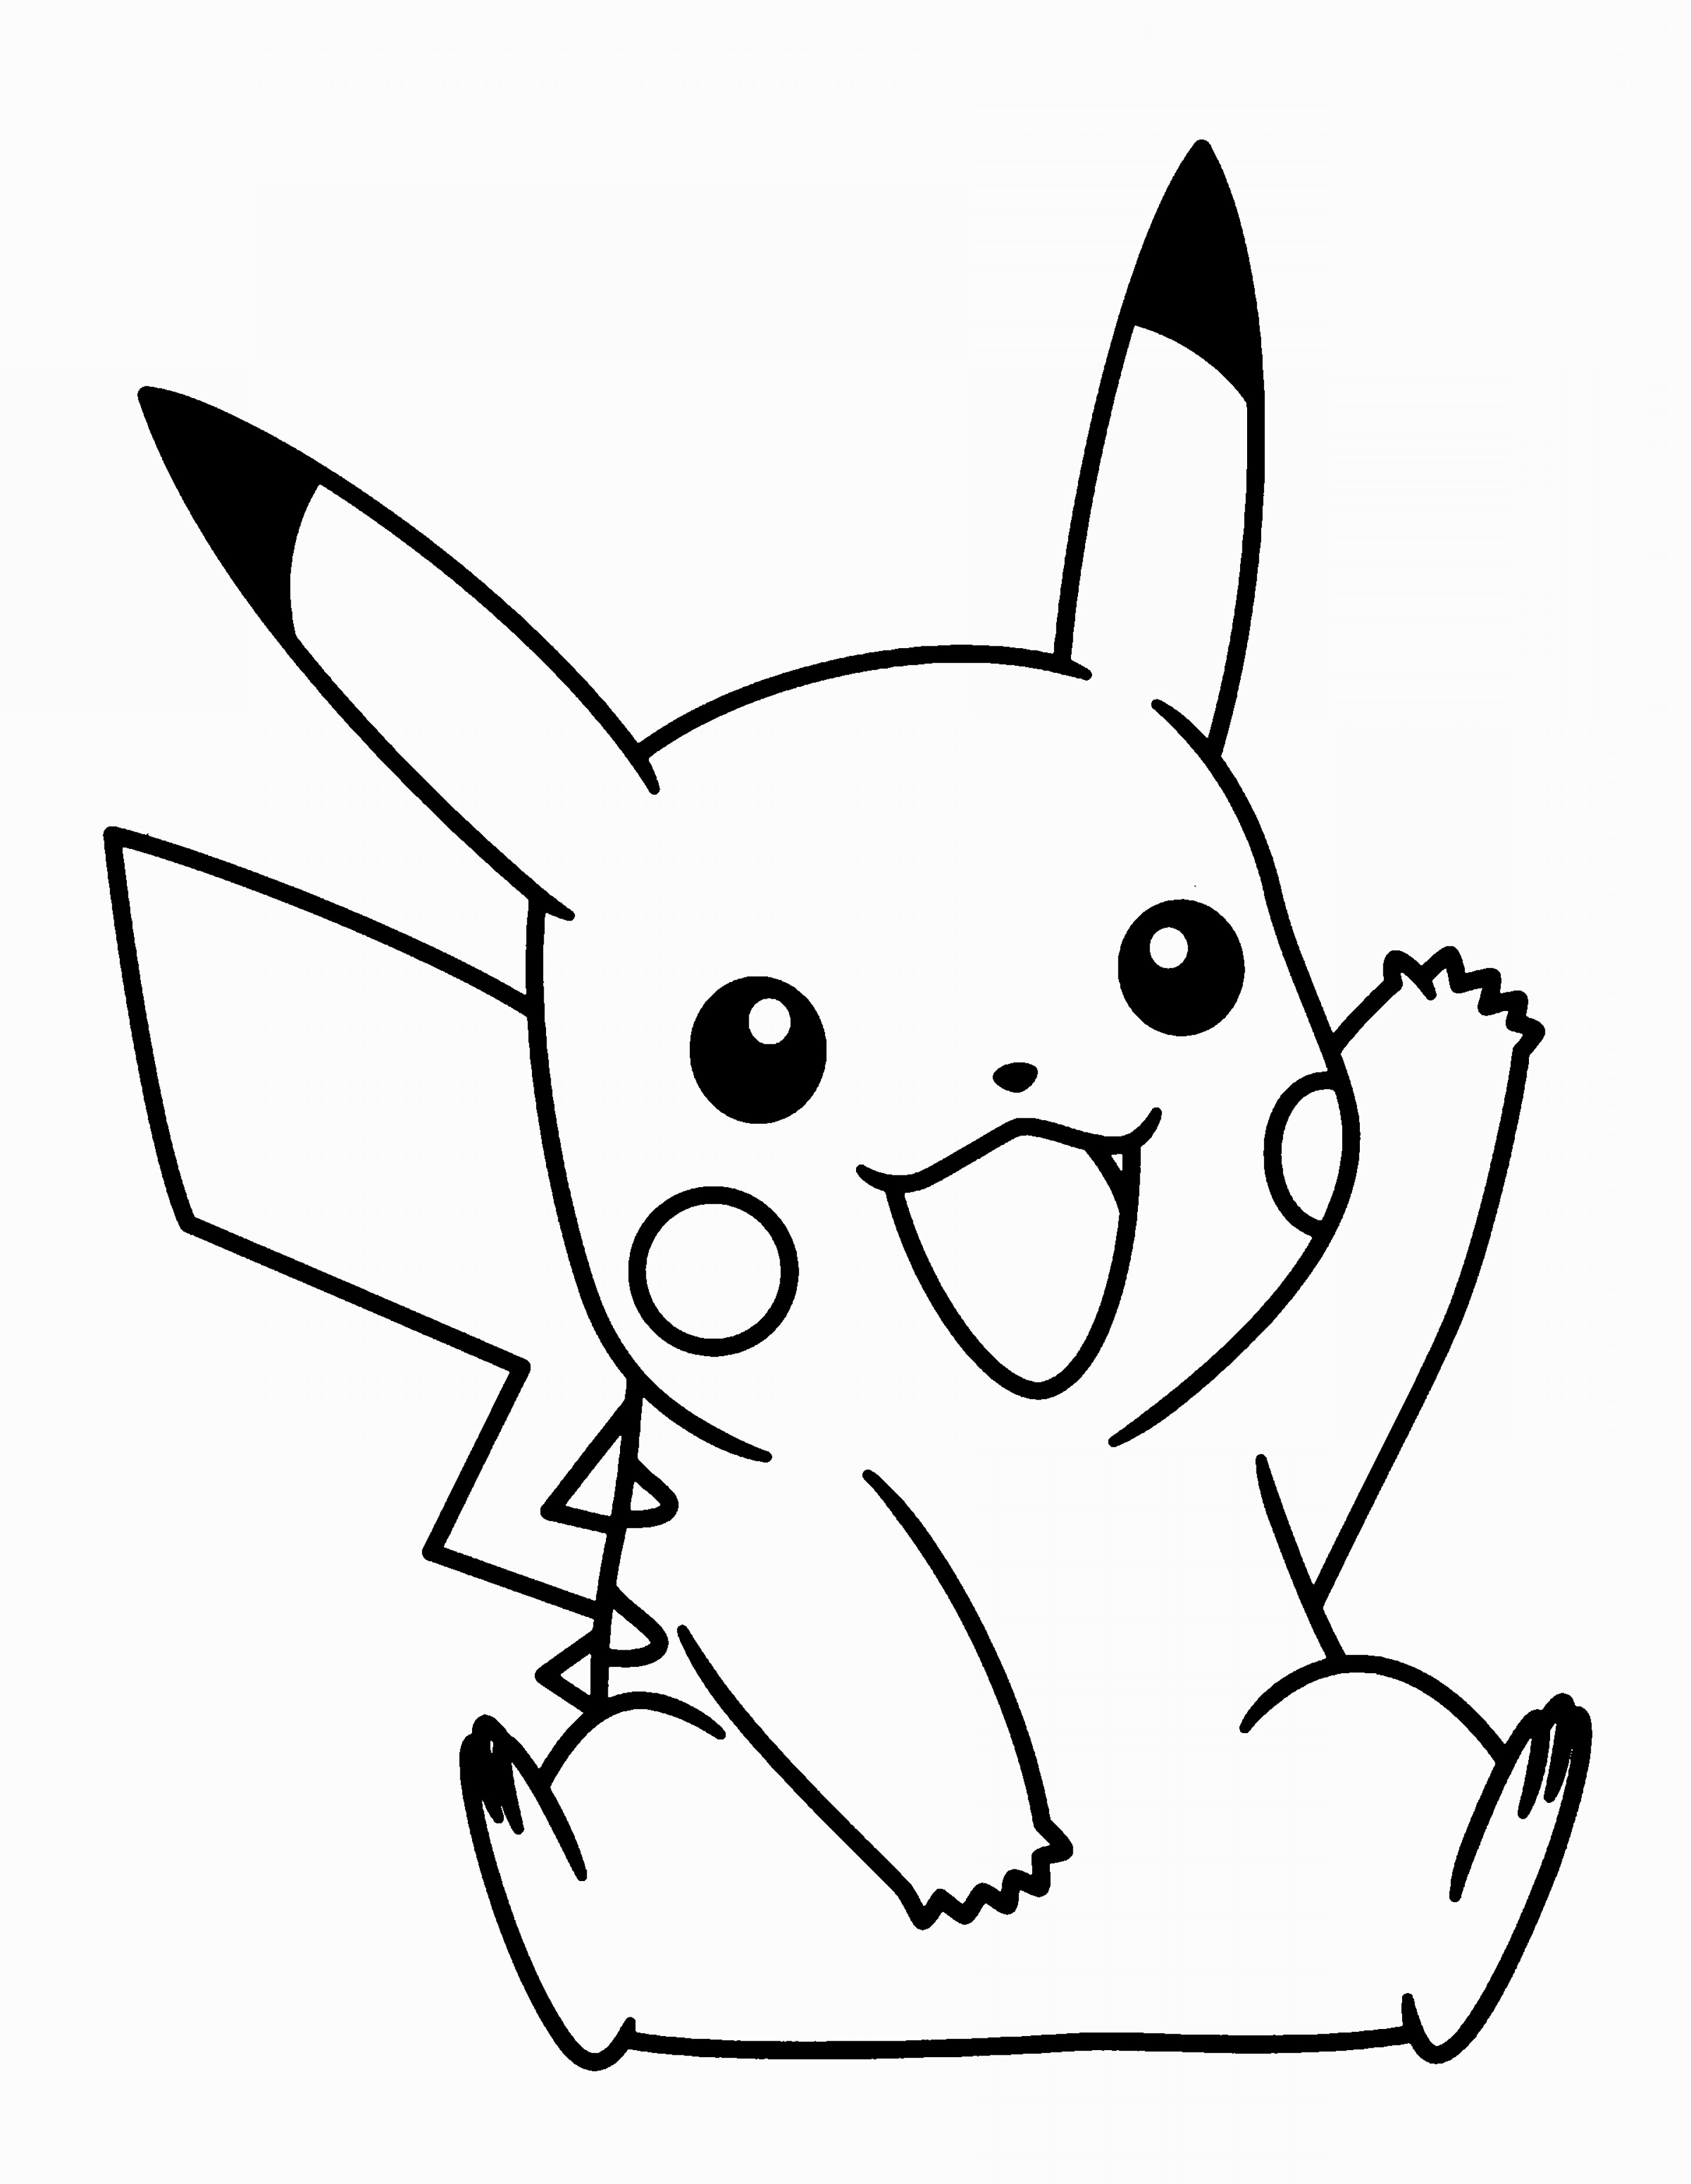 outline of pikachu pikachu clipart outlines pikachu outlines transparent pikachu of outline